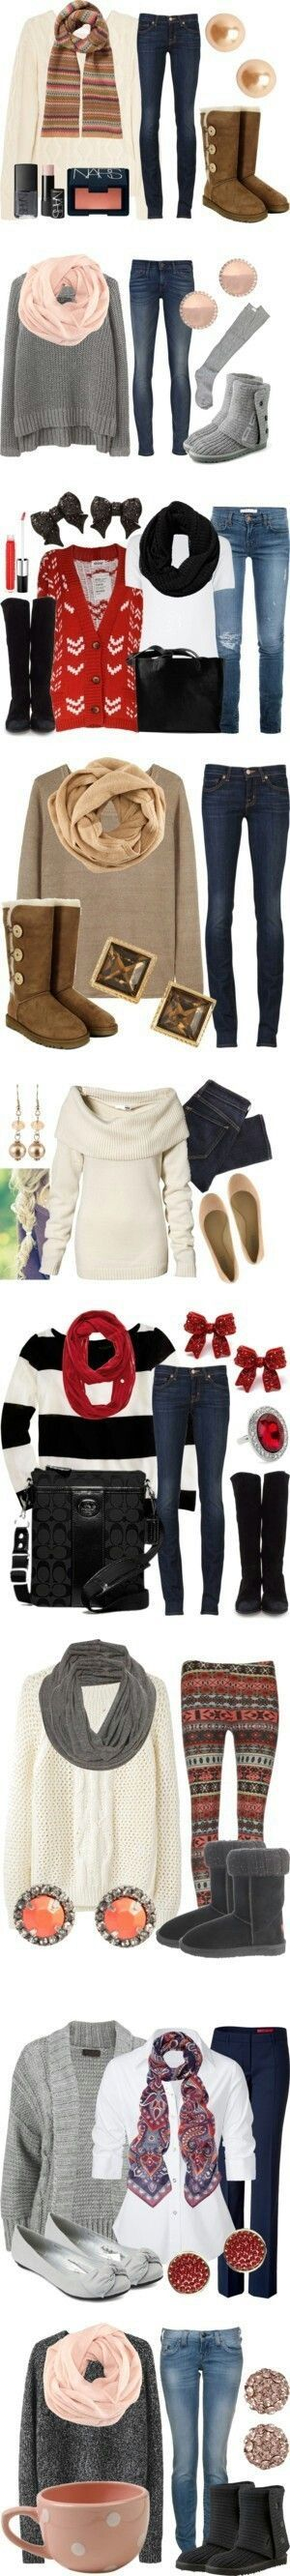 Winter outfits #xmas_present #xmas_gifts